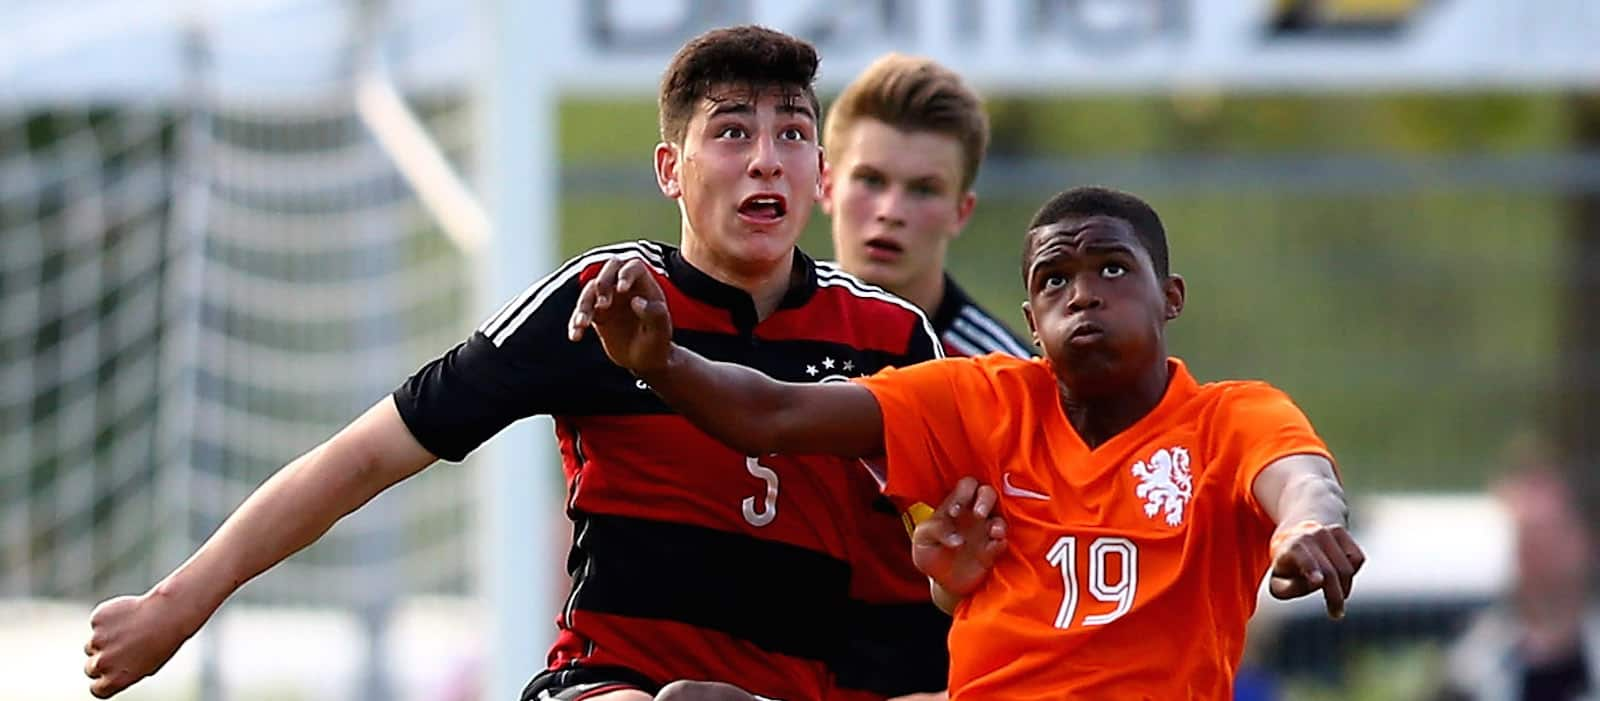 Daishawn Redan profile: Strengths, weaknesses and insight into Ajax youngster